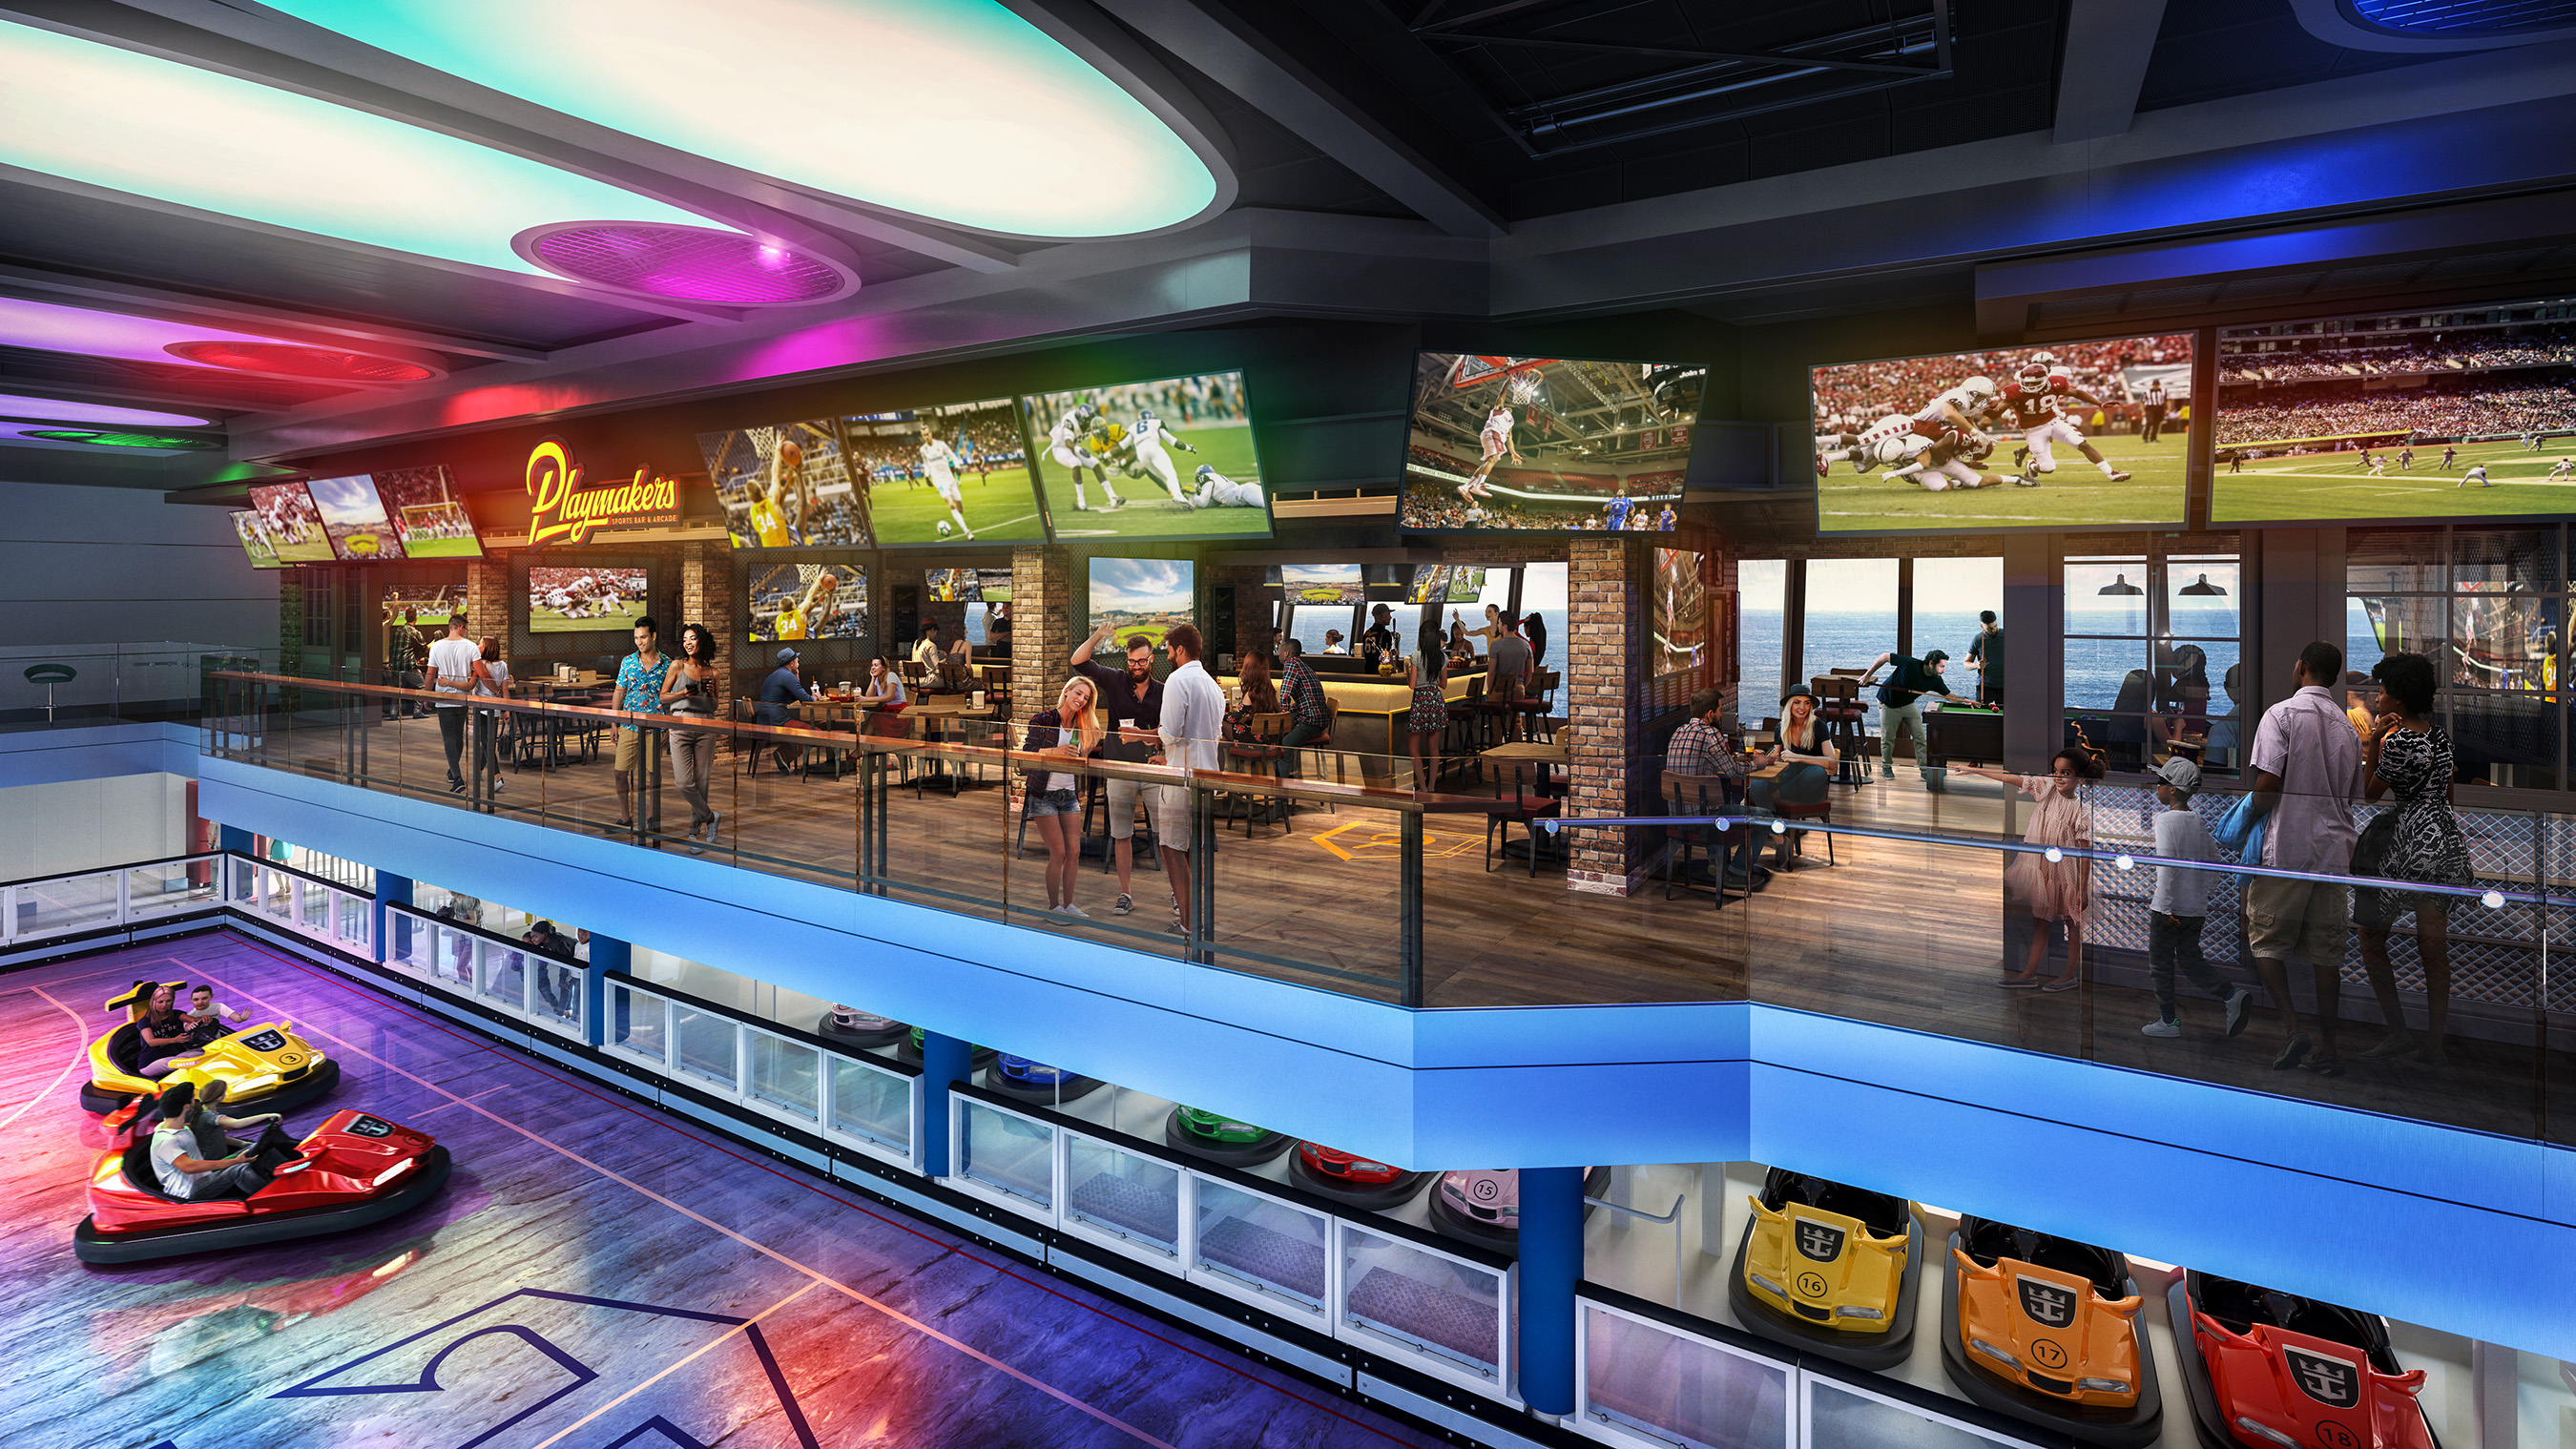 Odyssey of the Seas will combine the best of Quantum Class with new Royal Caribbean favorite Playmakers Sports Bar & Arcade, now boasting a prime location within SeaPlex. With TVs at every angle to cheer on the home team and club-level views of the competition below, sports fans won't miss a beat. Odyssey debuts in Fort Lauderdale November 2020.